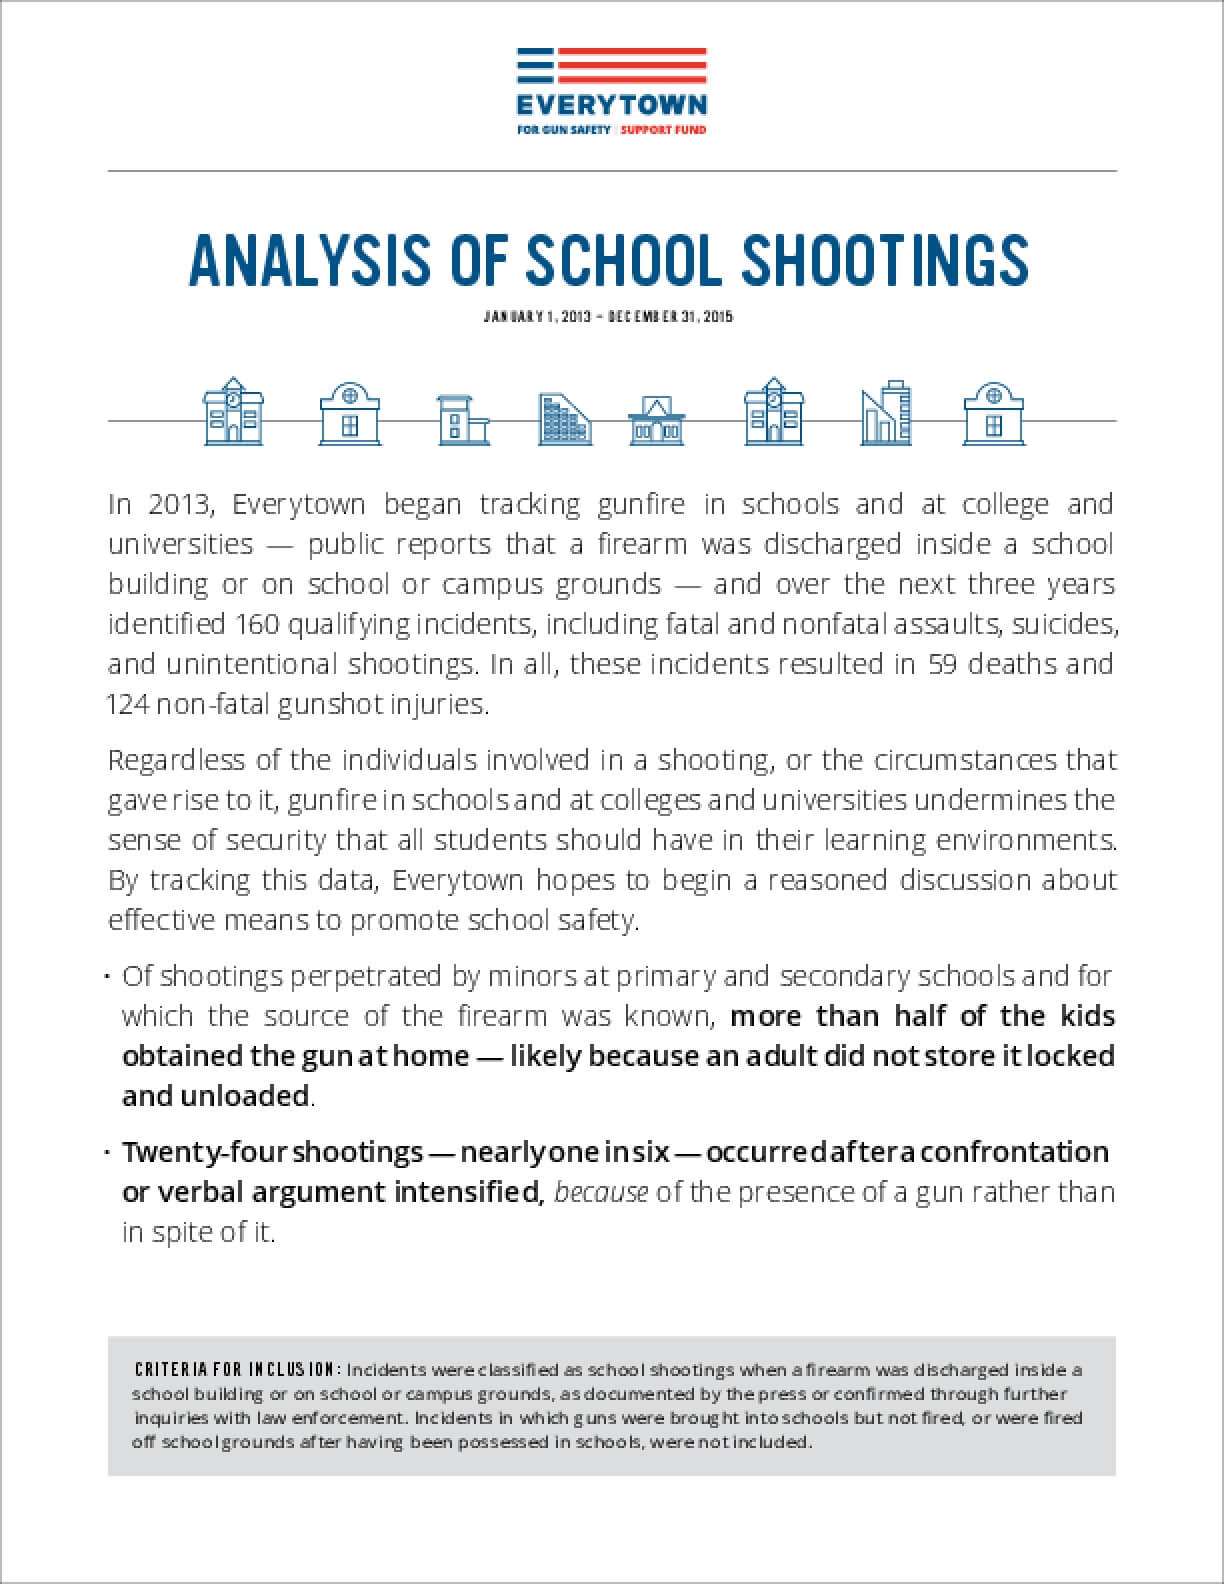 Analysis of School Shootings